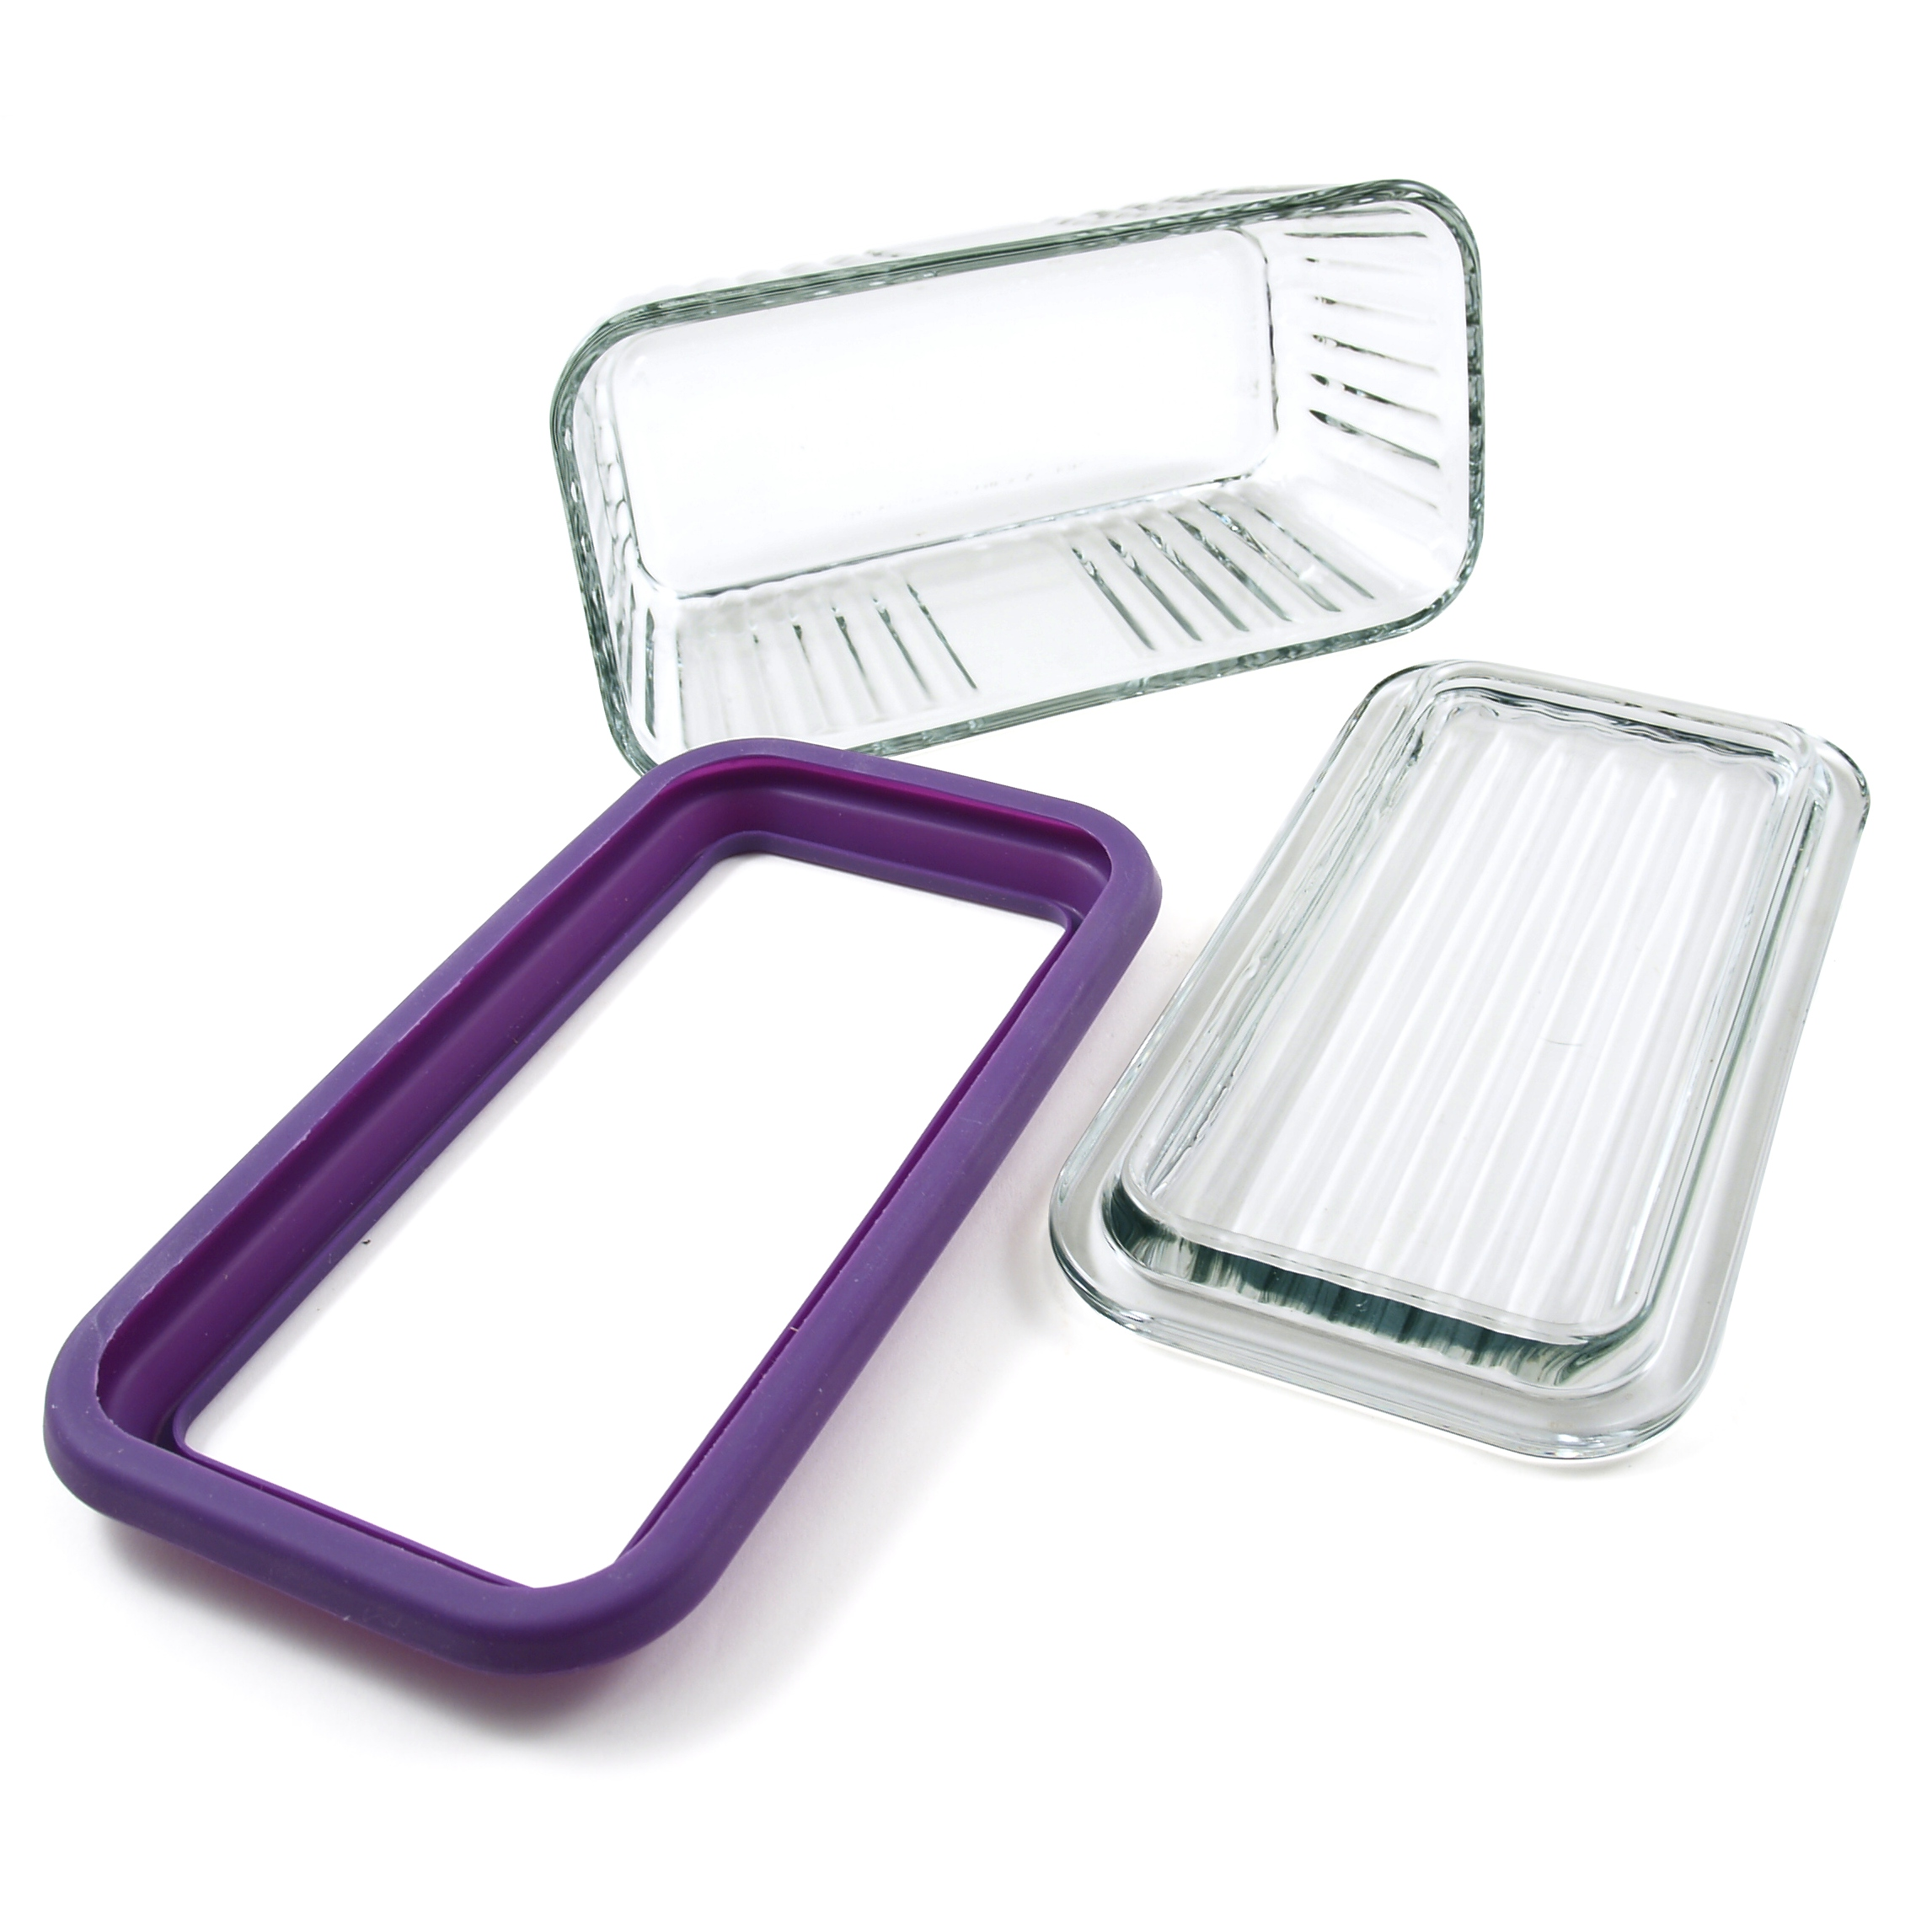 Anchor Hocking Bake 'N' Store Glass Baking Dish with Lid and Eggplant Silicone Gasket Sleeve, 5 Cup